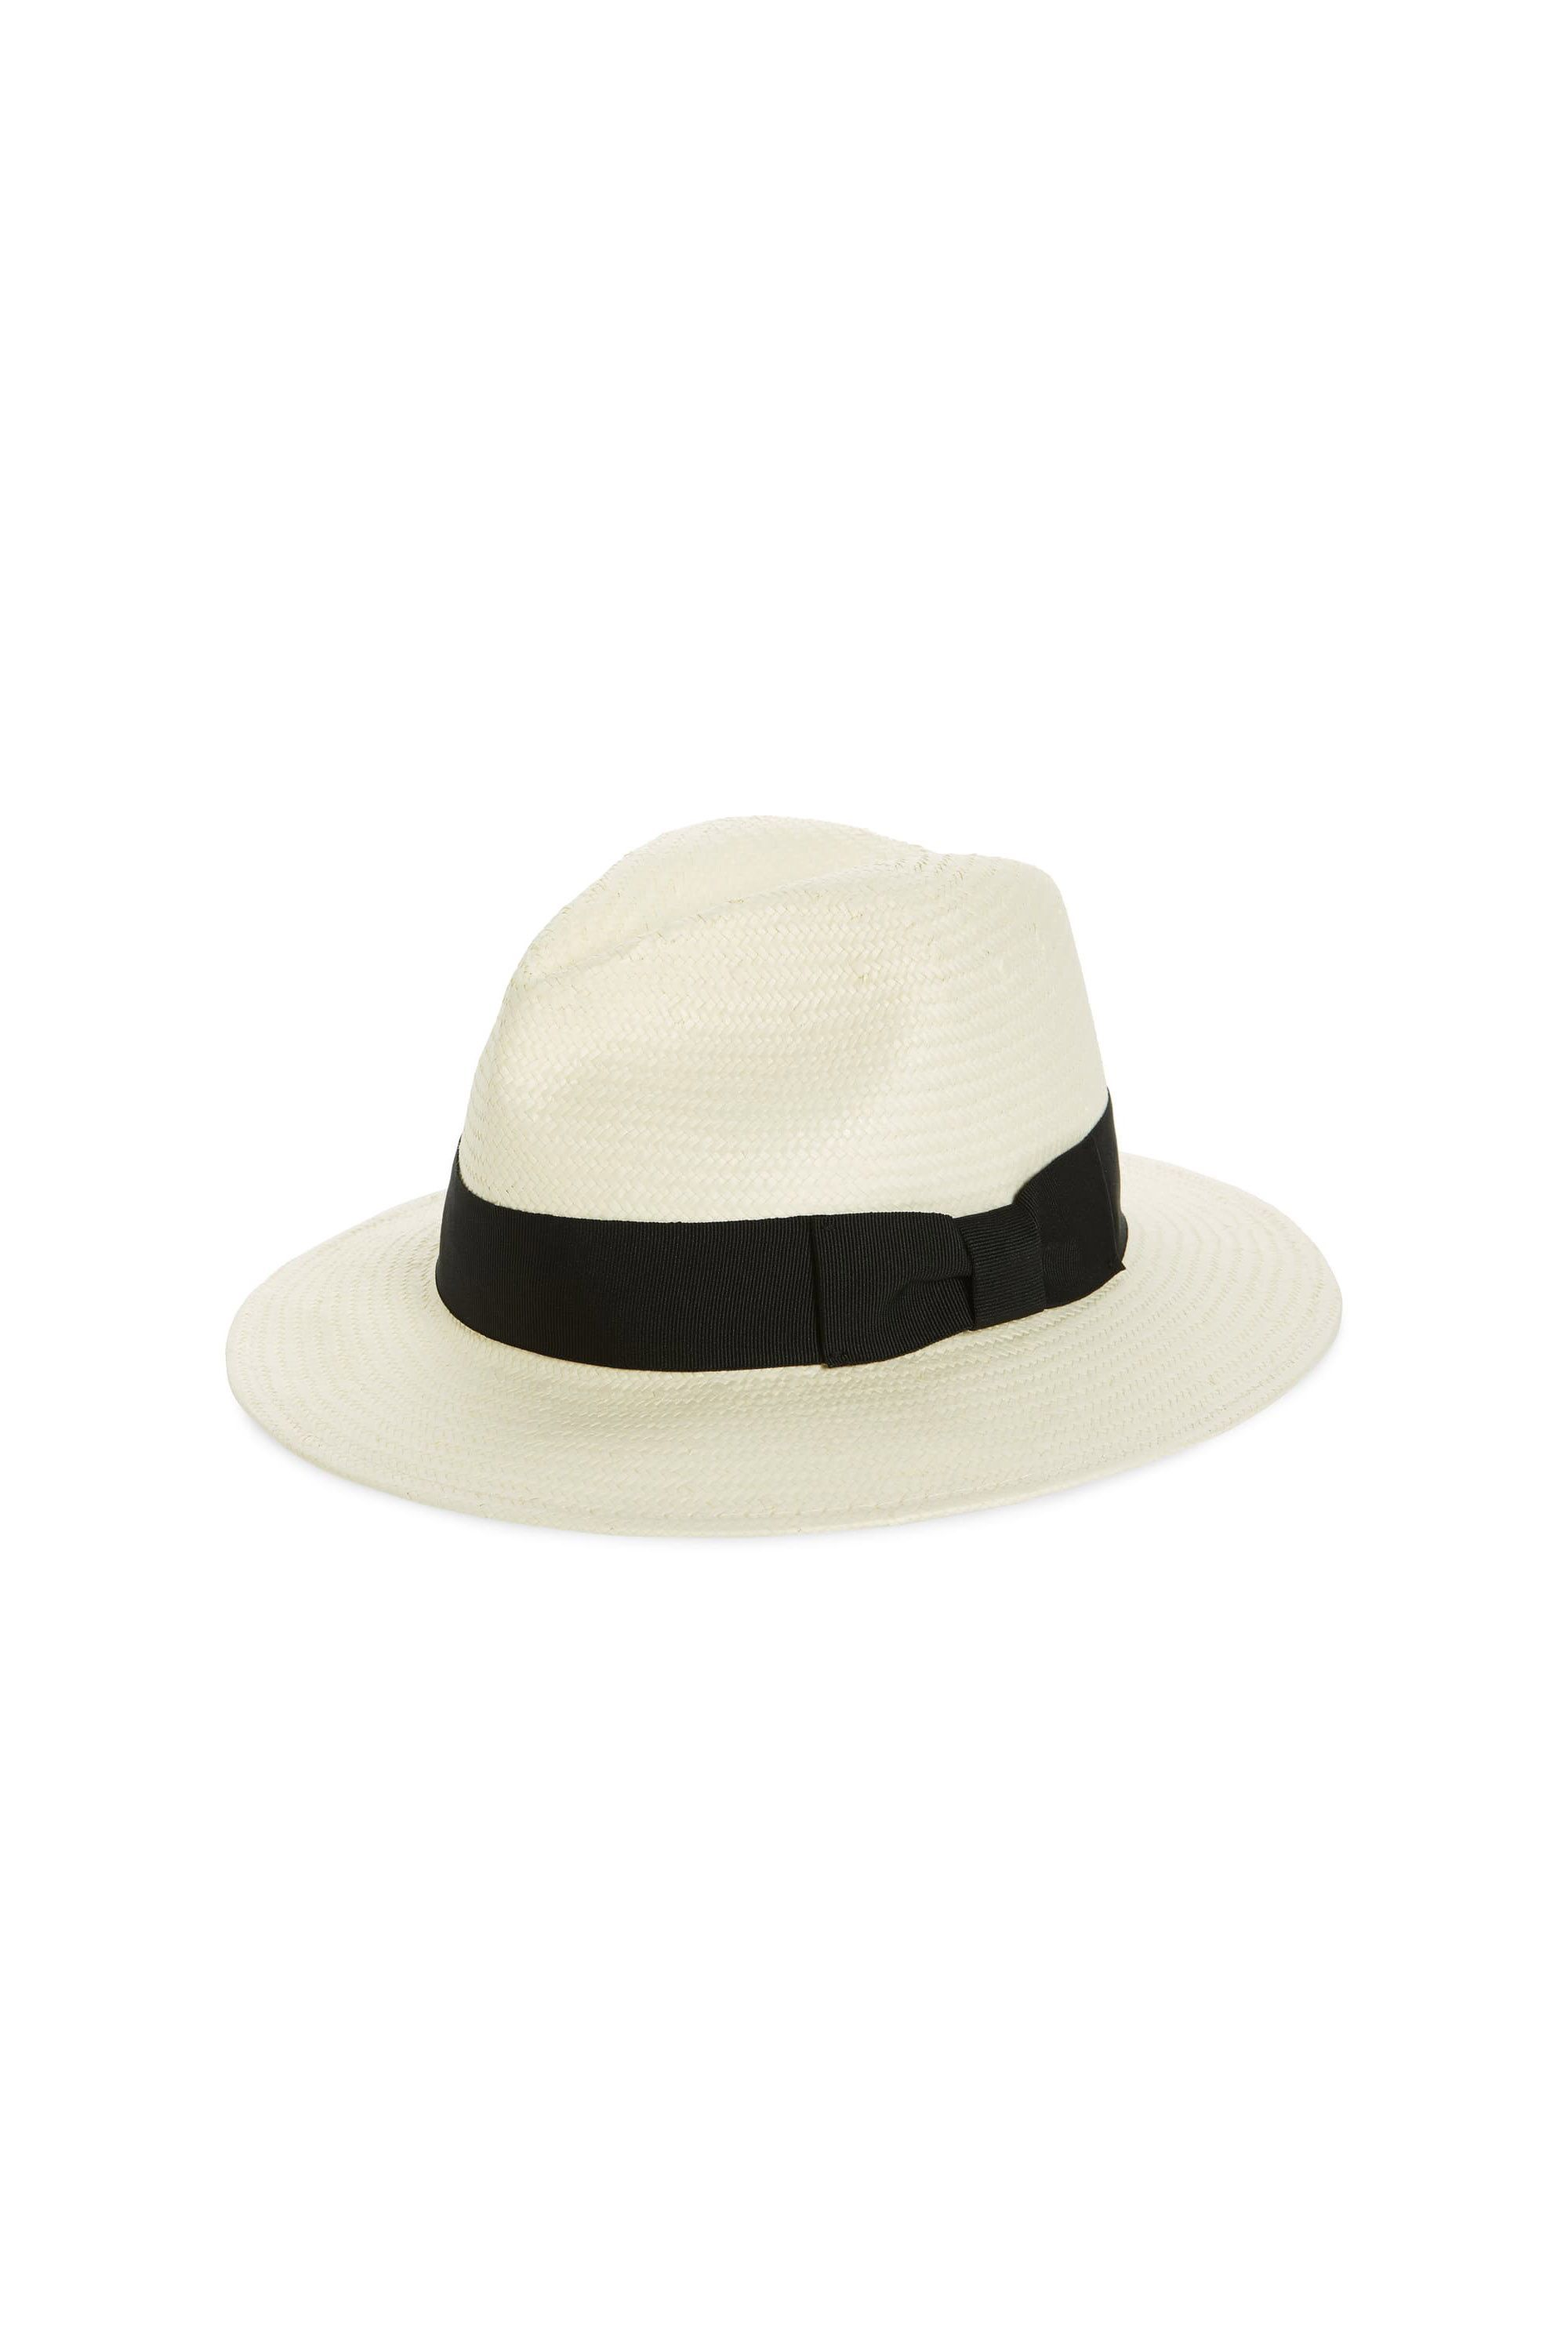 Women Sun Hats Summer Round Top Raffia Straw Breathable Folppy Wide Brim Caps for Beach Pool Party Picnic